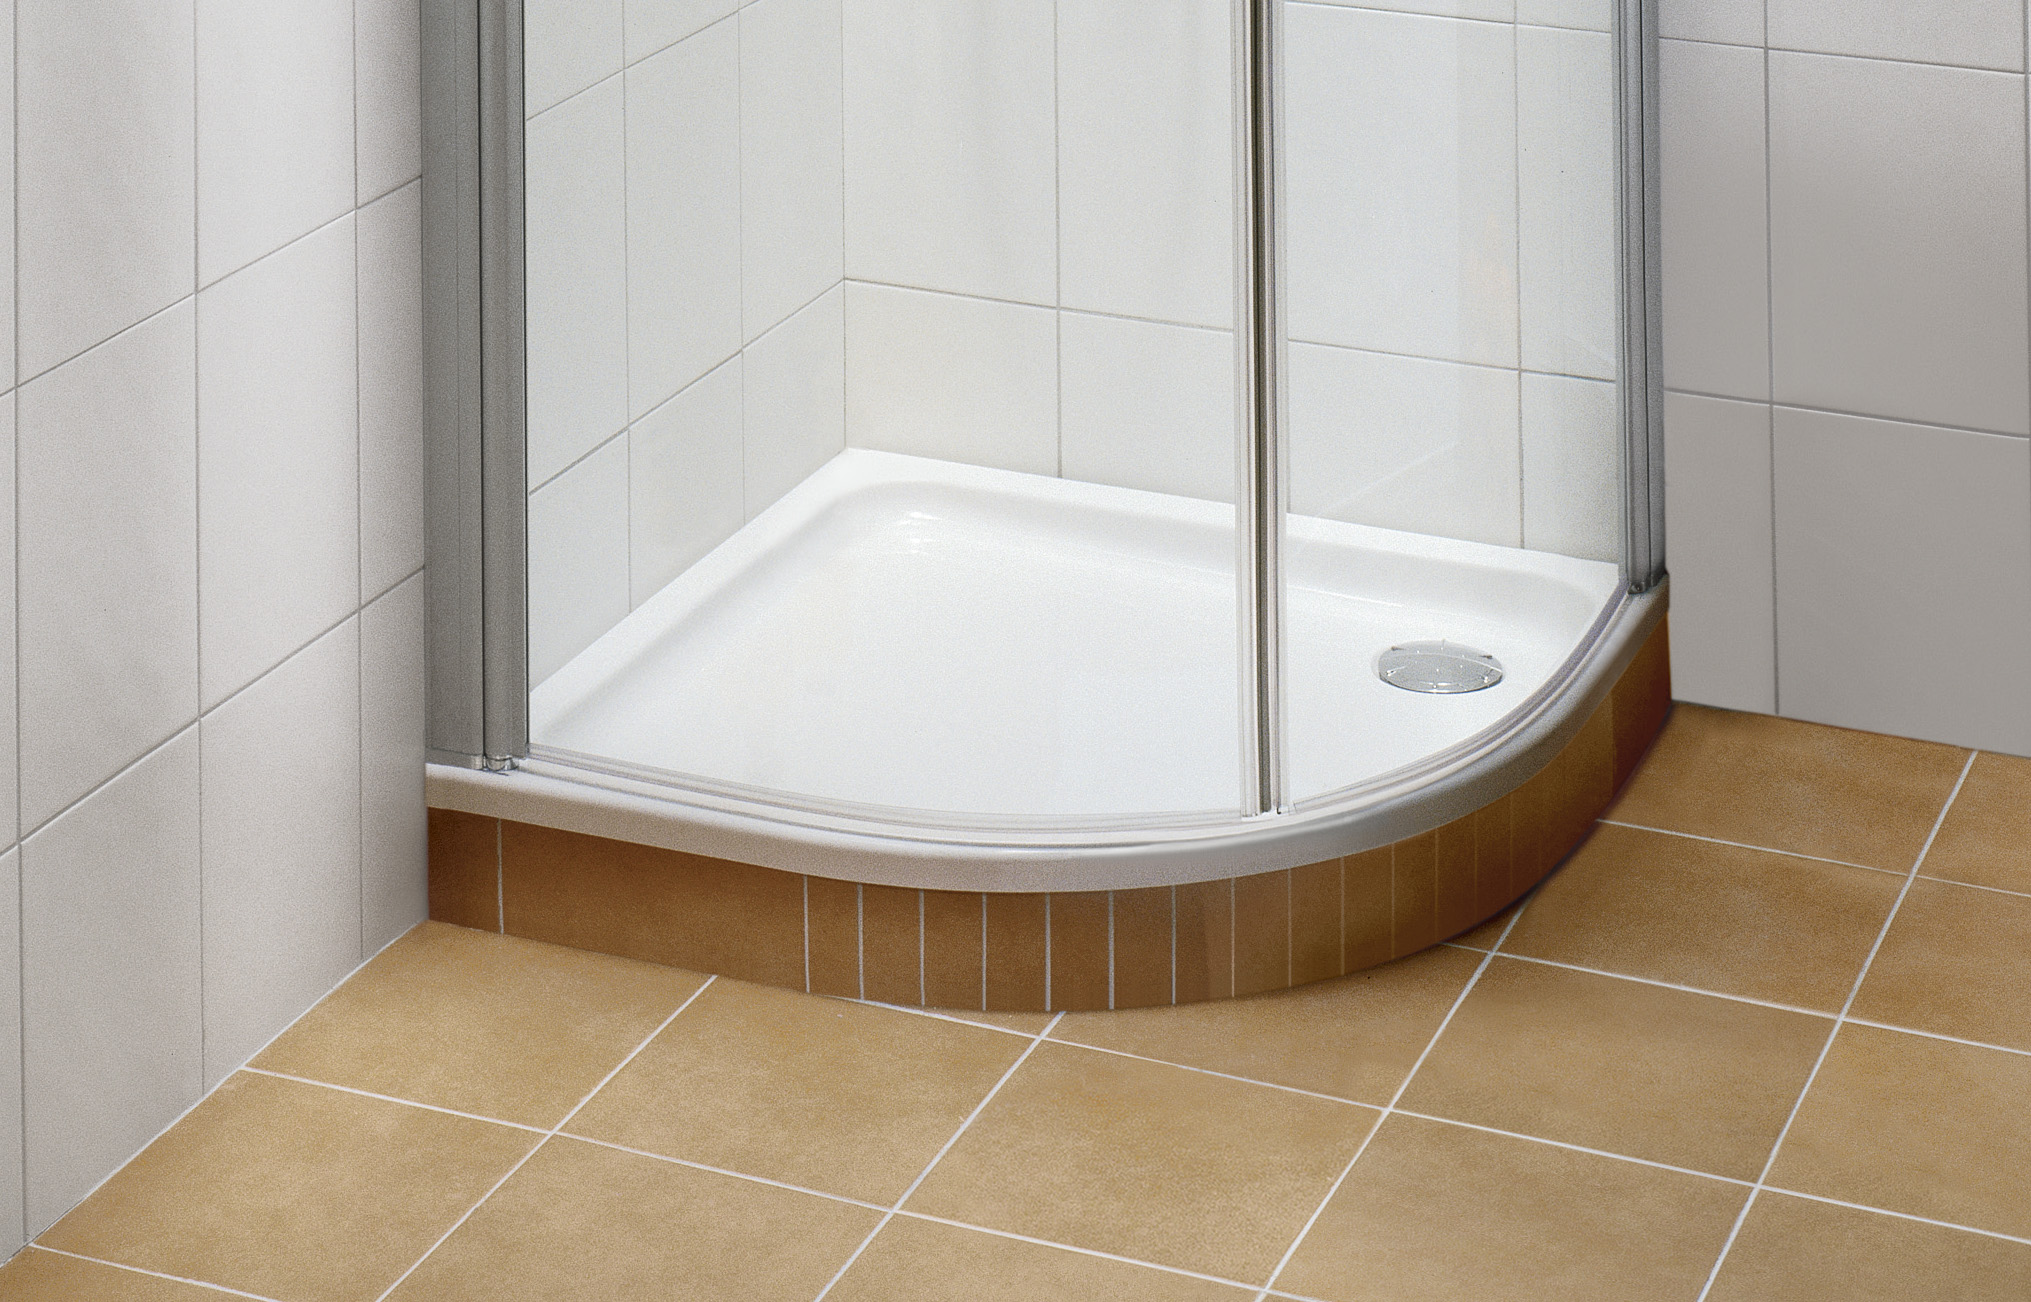 O.novo Shower tray, Shower trays (Acrylic, Quaryl), Shower trays